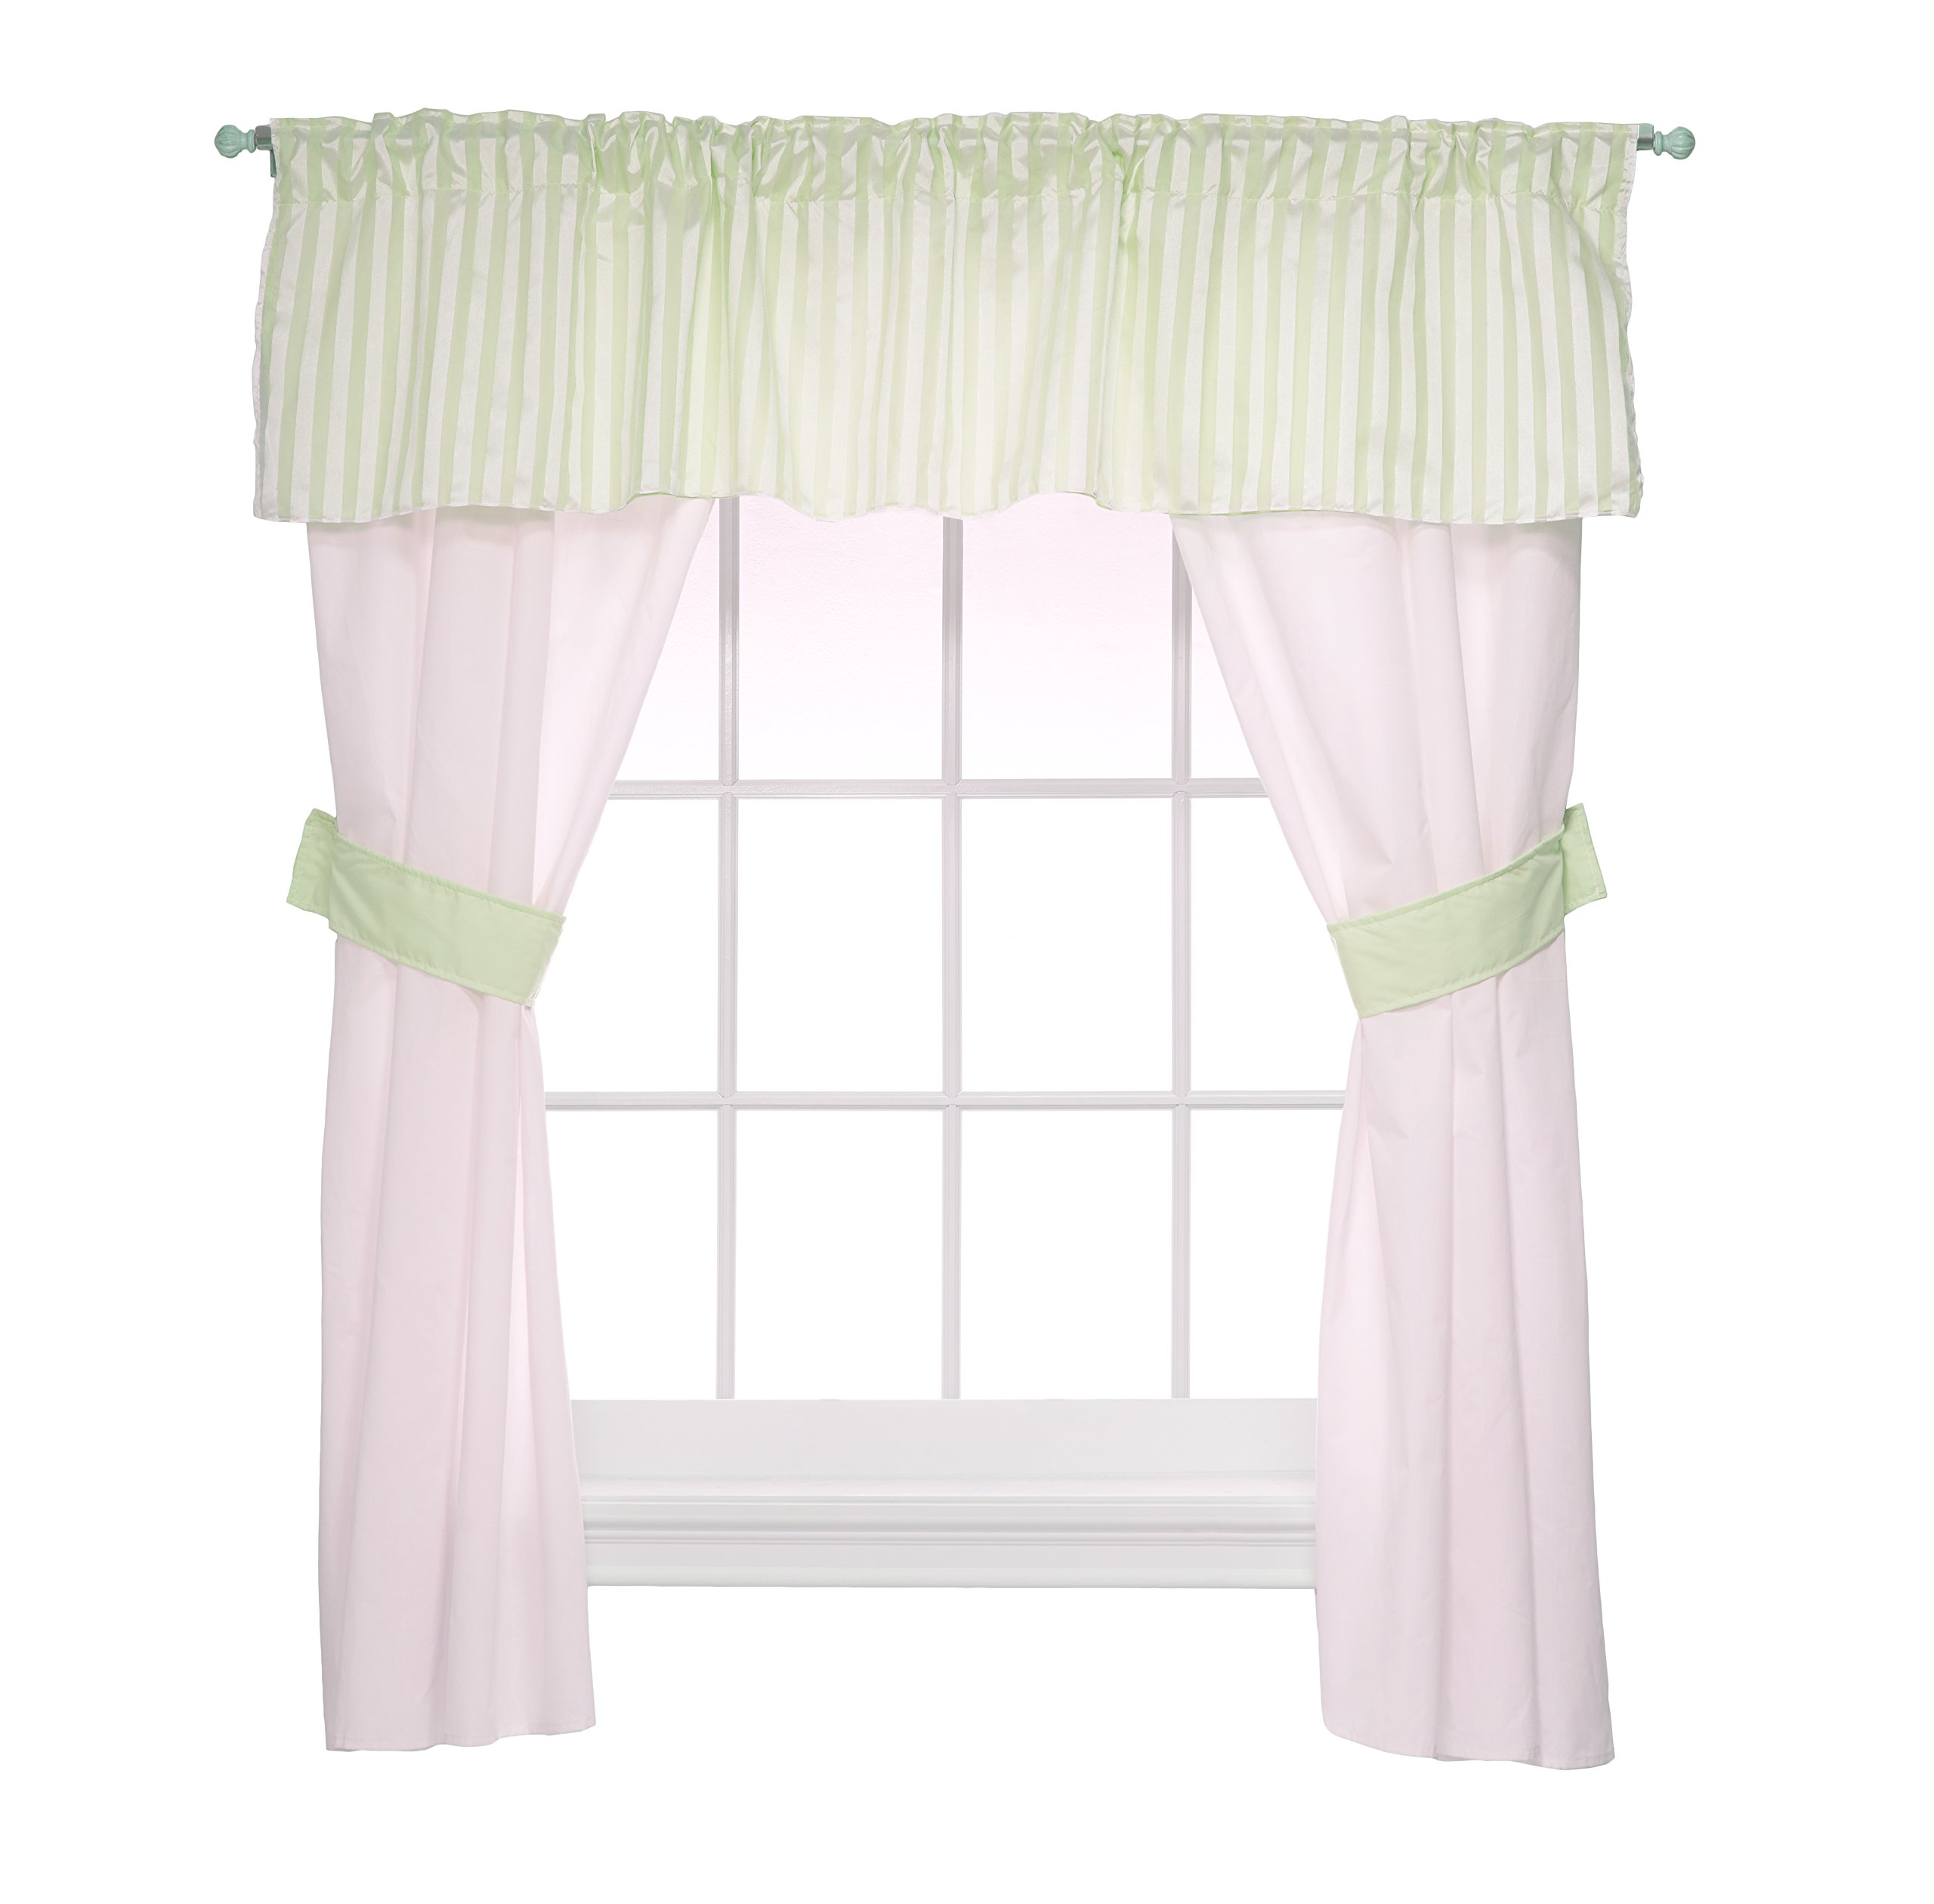 Baby Doll Candyland 5 Piece Window Valance and Curtain Set, Mint by Baby Doll